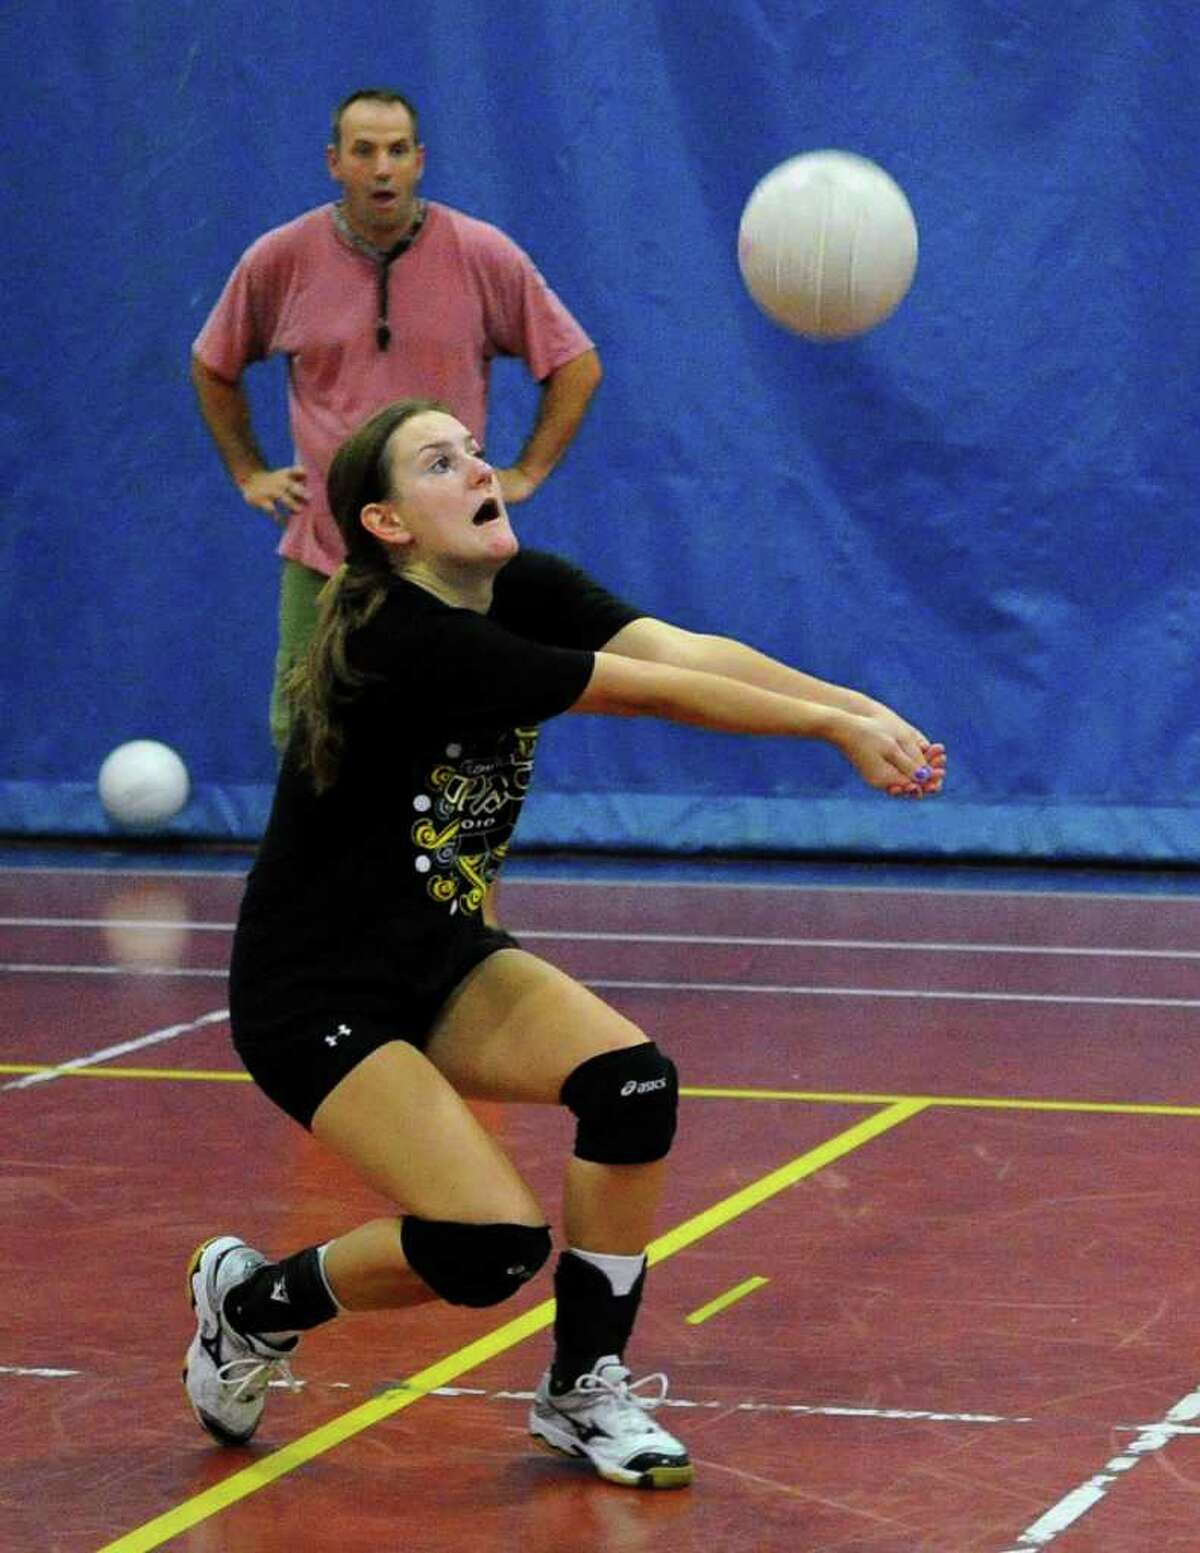 As Coach Jon Shepro looks on, Melissa Sweeney bumps the ball, during volleyball practice at Staples High in Westport, Conn. on Thursday September 2, 2010.